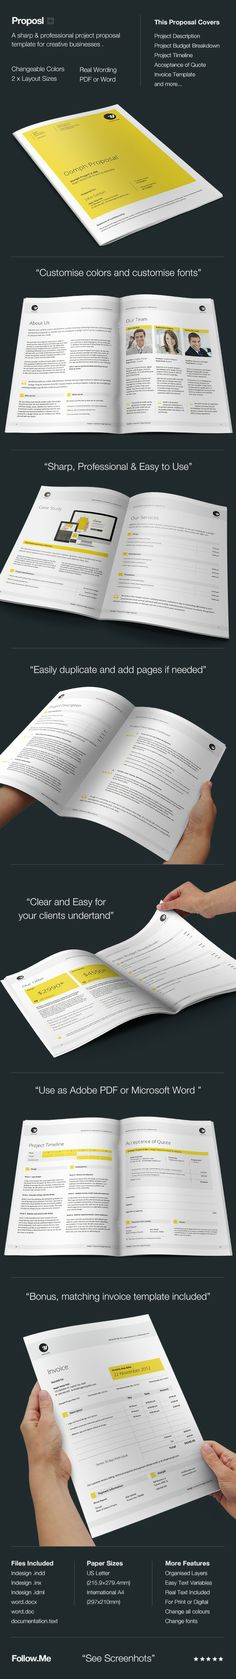 Quoter - Proposal  Invoice Template Proposals, Proposal templates - Sample Contract Proposal Template